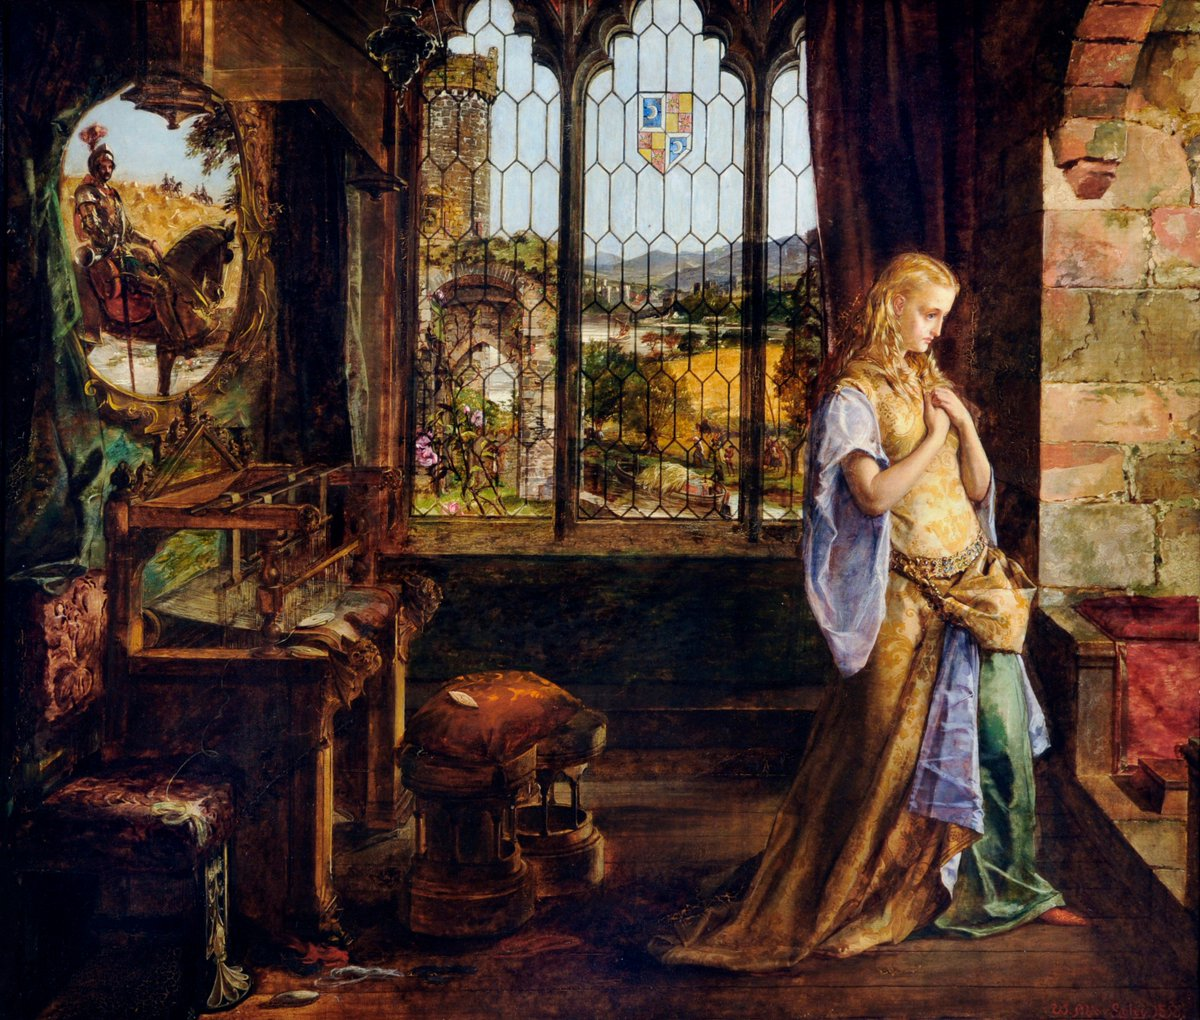 Today we're joining @NationalGallery #PaintedLovers - here's 'The Lady of Shalott' by William Maw Egley, 1858. https://t.co/YQoujT6p4q